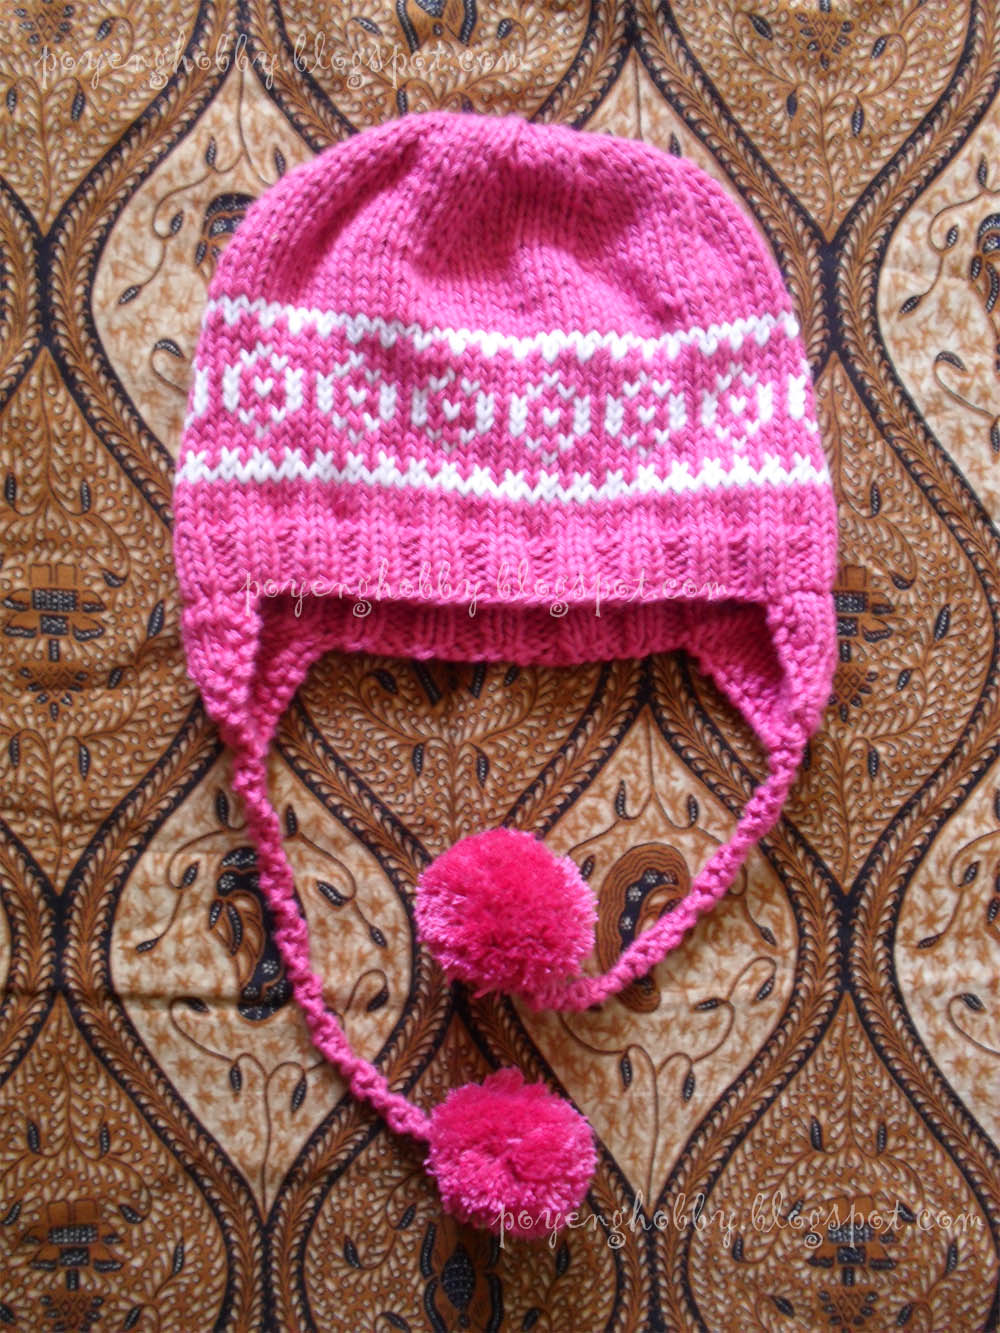 Ajeng Belajar Merajut  Knitting with Ajeng  Little Diamond Earflap ... 956bbc748a0